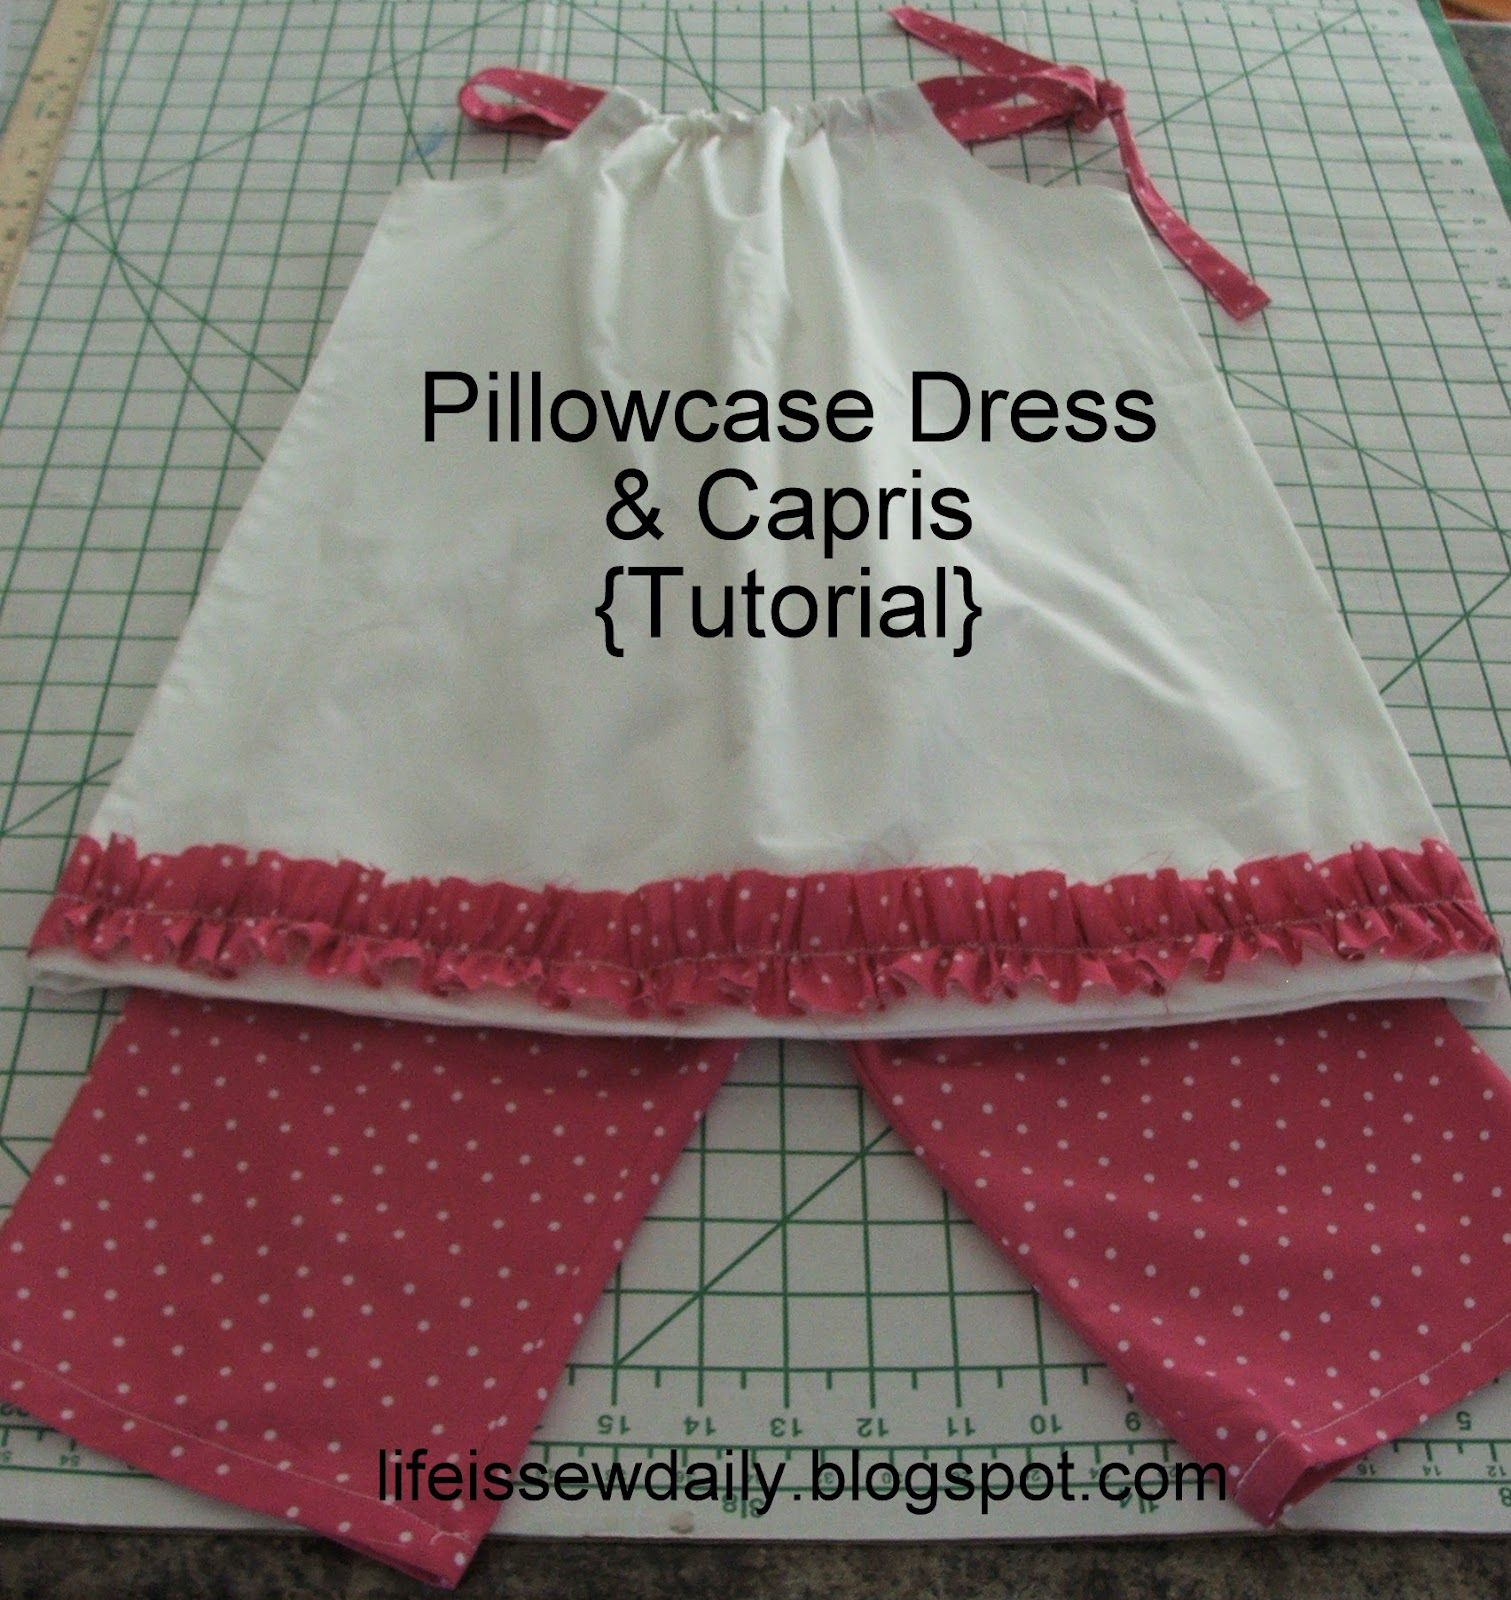 Life is sew daily pillowcase dress matching capris tutorial life is sew daily pillowcase dress matching capris tutorial jeuxipadfo Choice Image